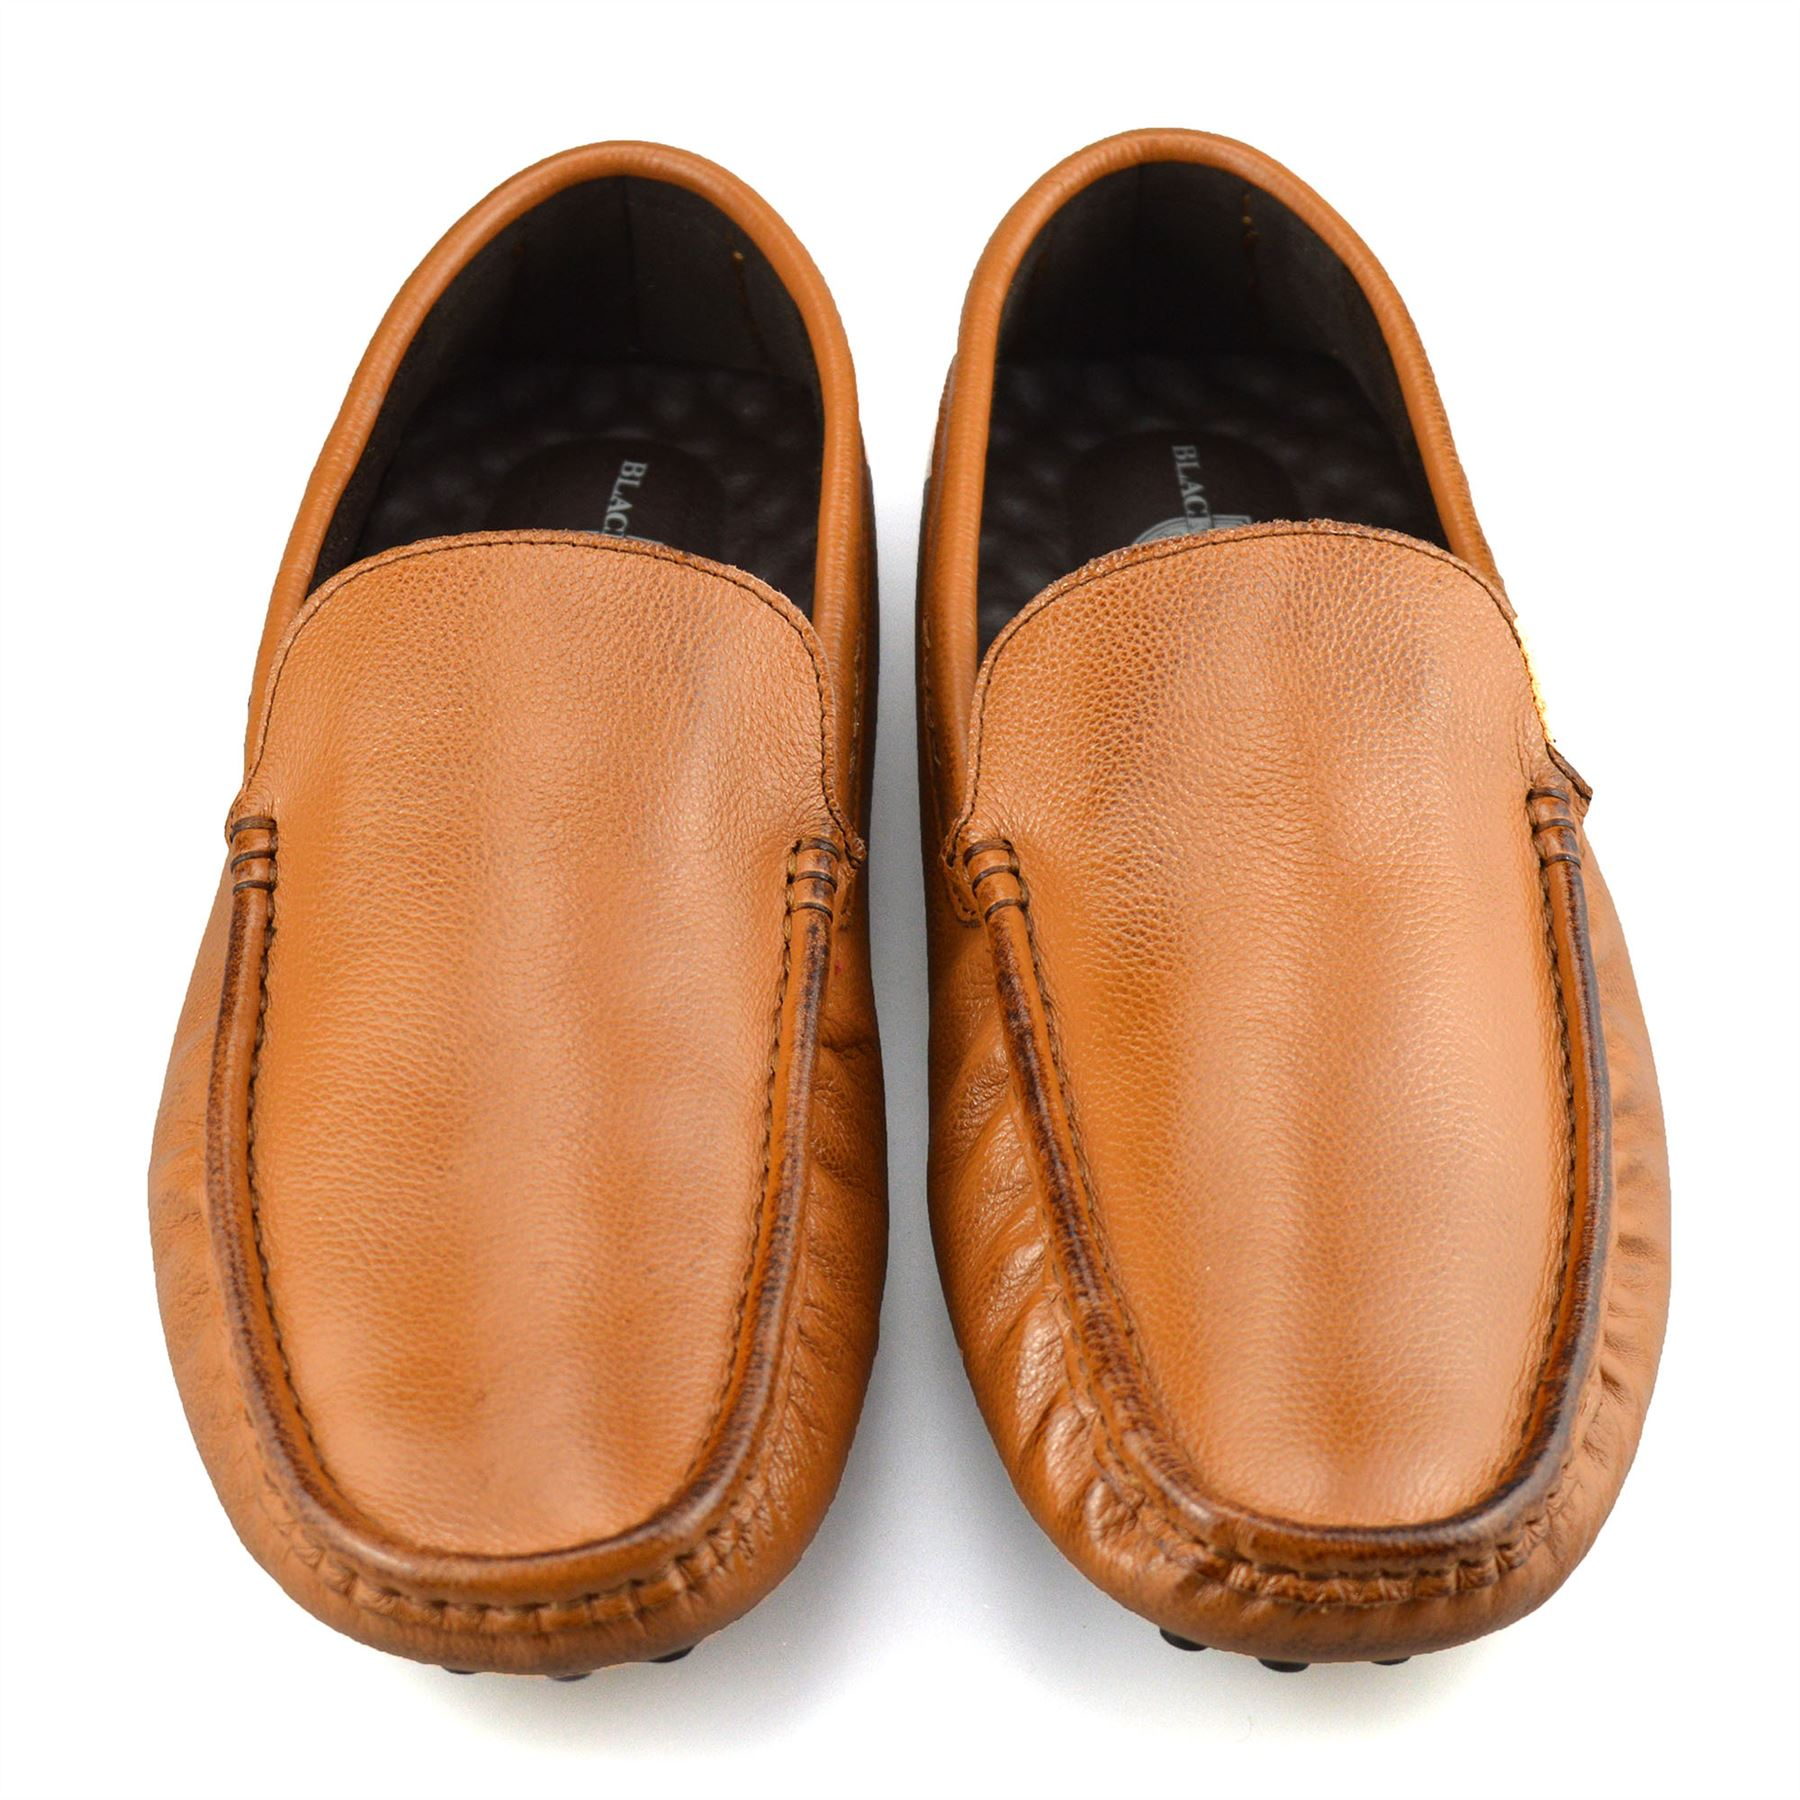 Mens-Leather-Slip-On-Casual-Smart-Loafers-Mocassin-Designer-Driving-Shoes-Size thumbnail 15